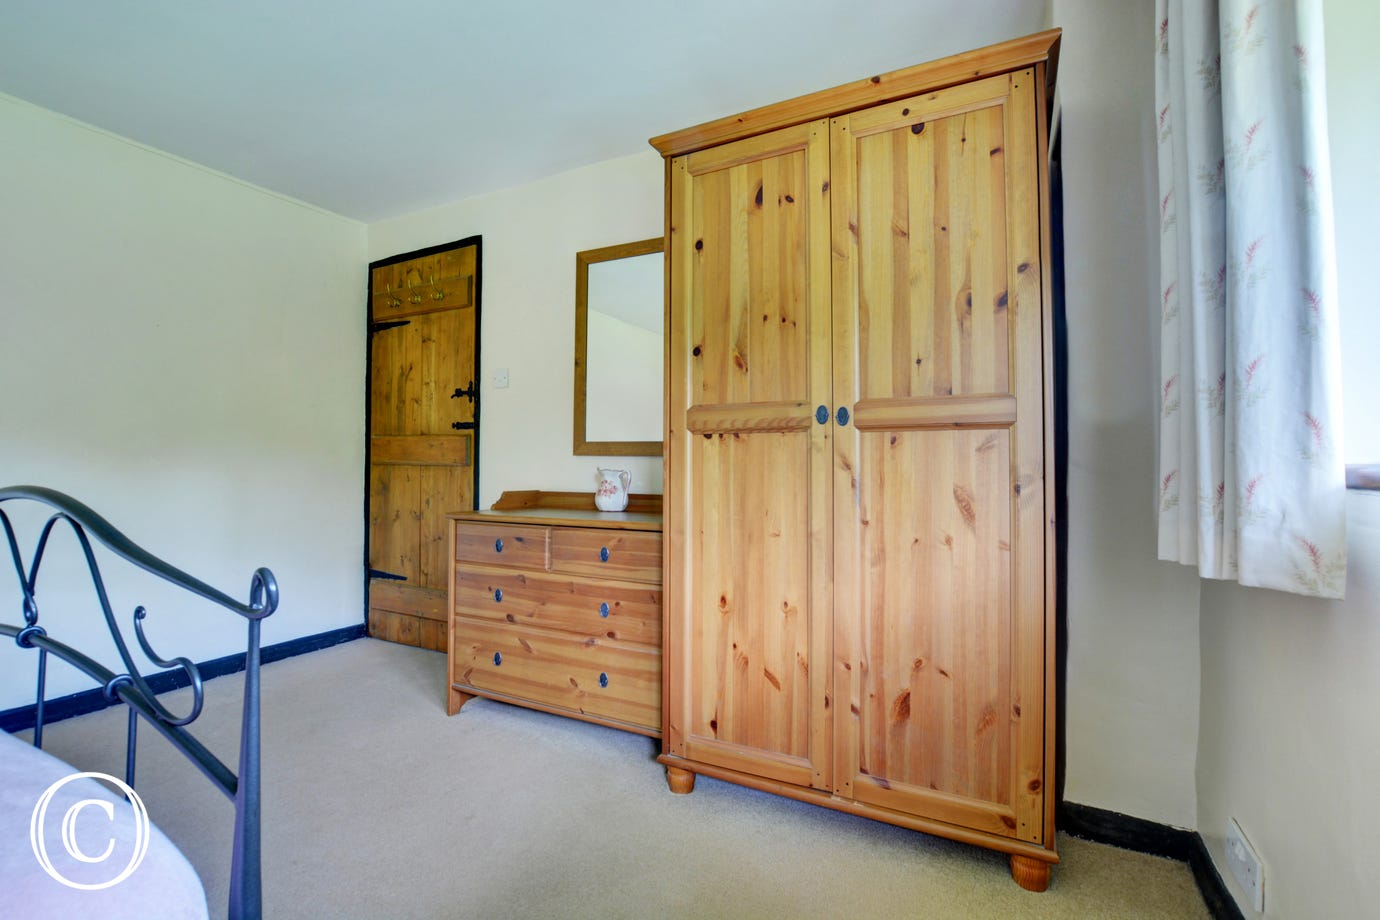 There is ample storage in the double bedded room